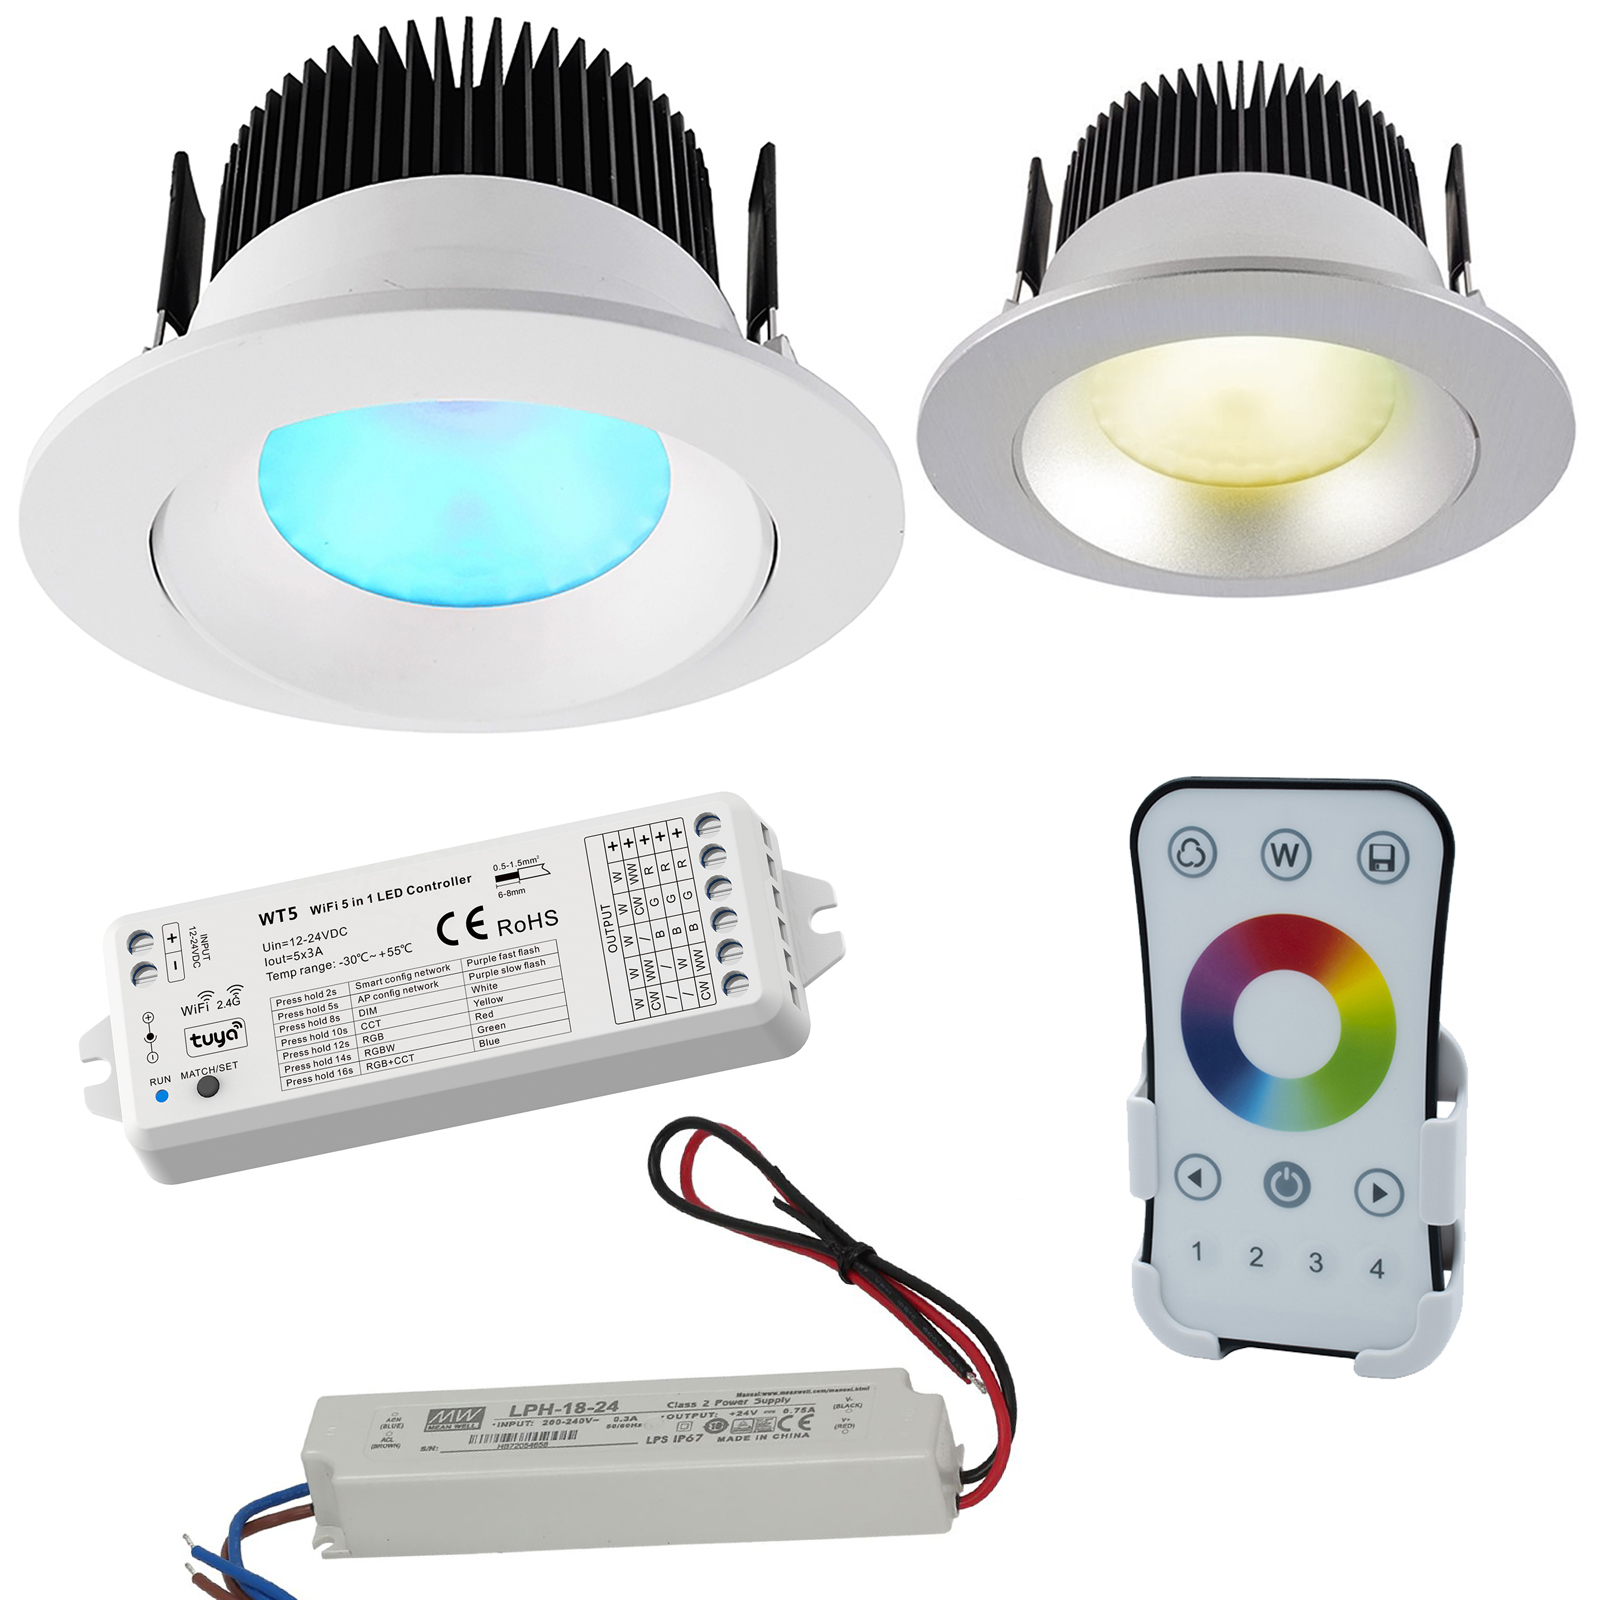 KIT cromoterapia box doccia LED 16W RGB 3000K 24V luce colorata incasso 94mm WiFi RF controllo vocale Alexa Google